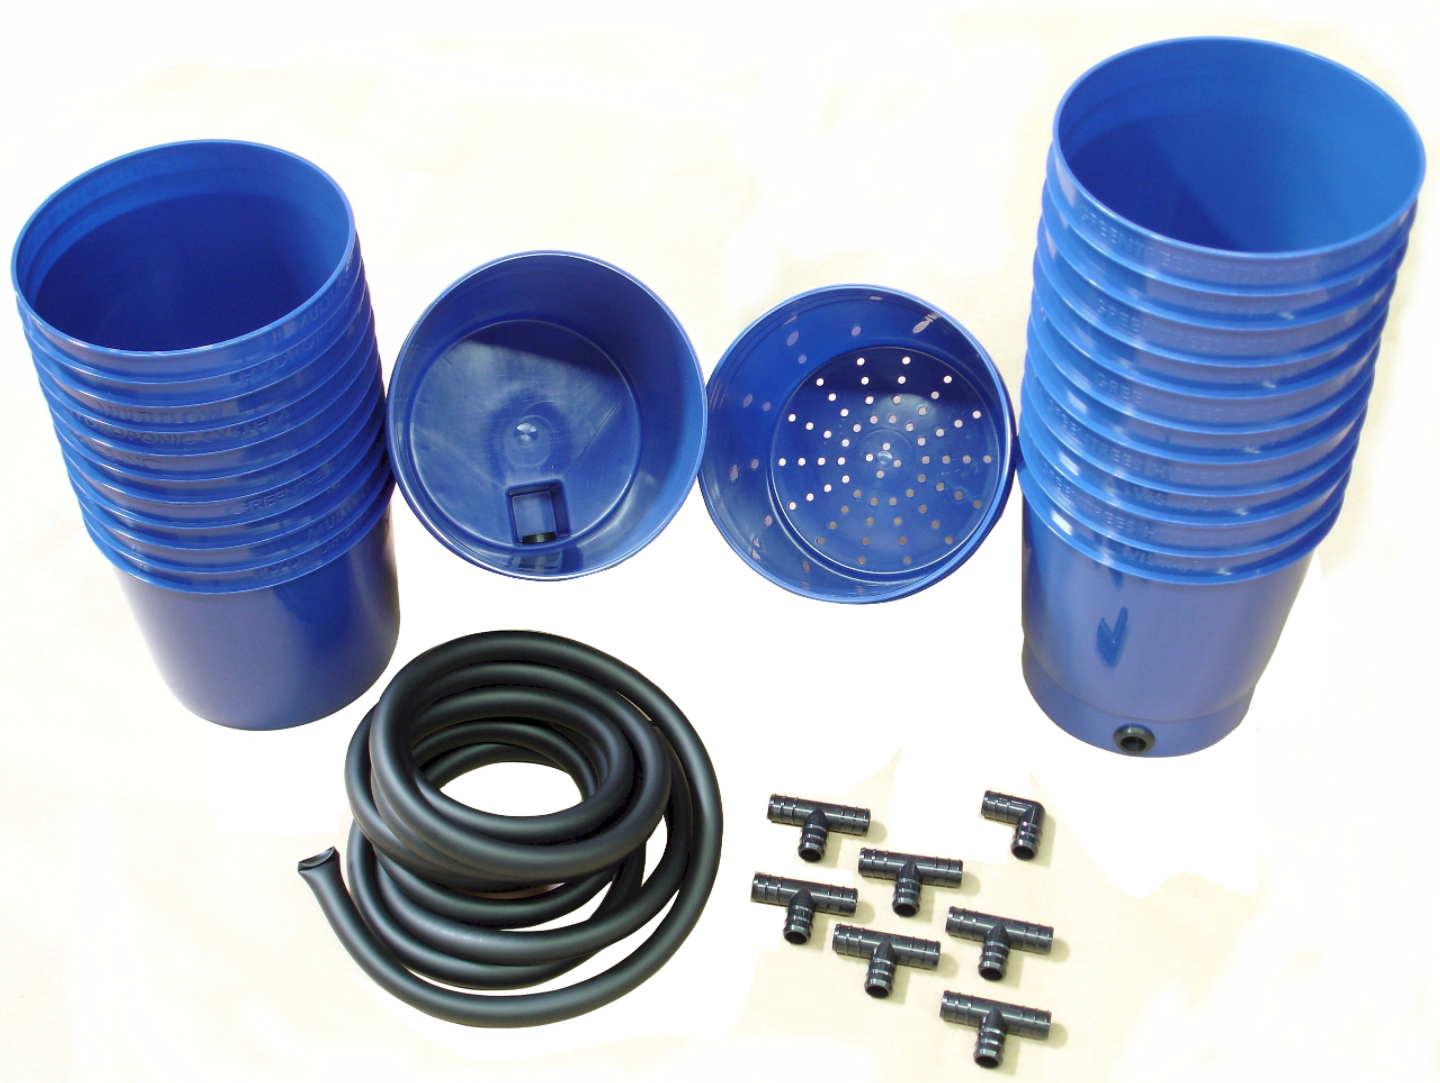 Photograph of Greentrees Hydroponics Add-on Pots Kit (6 complete pots, fittings and tubing included)